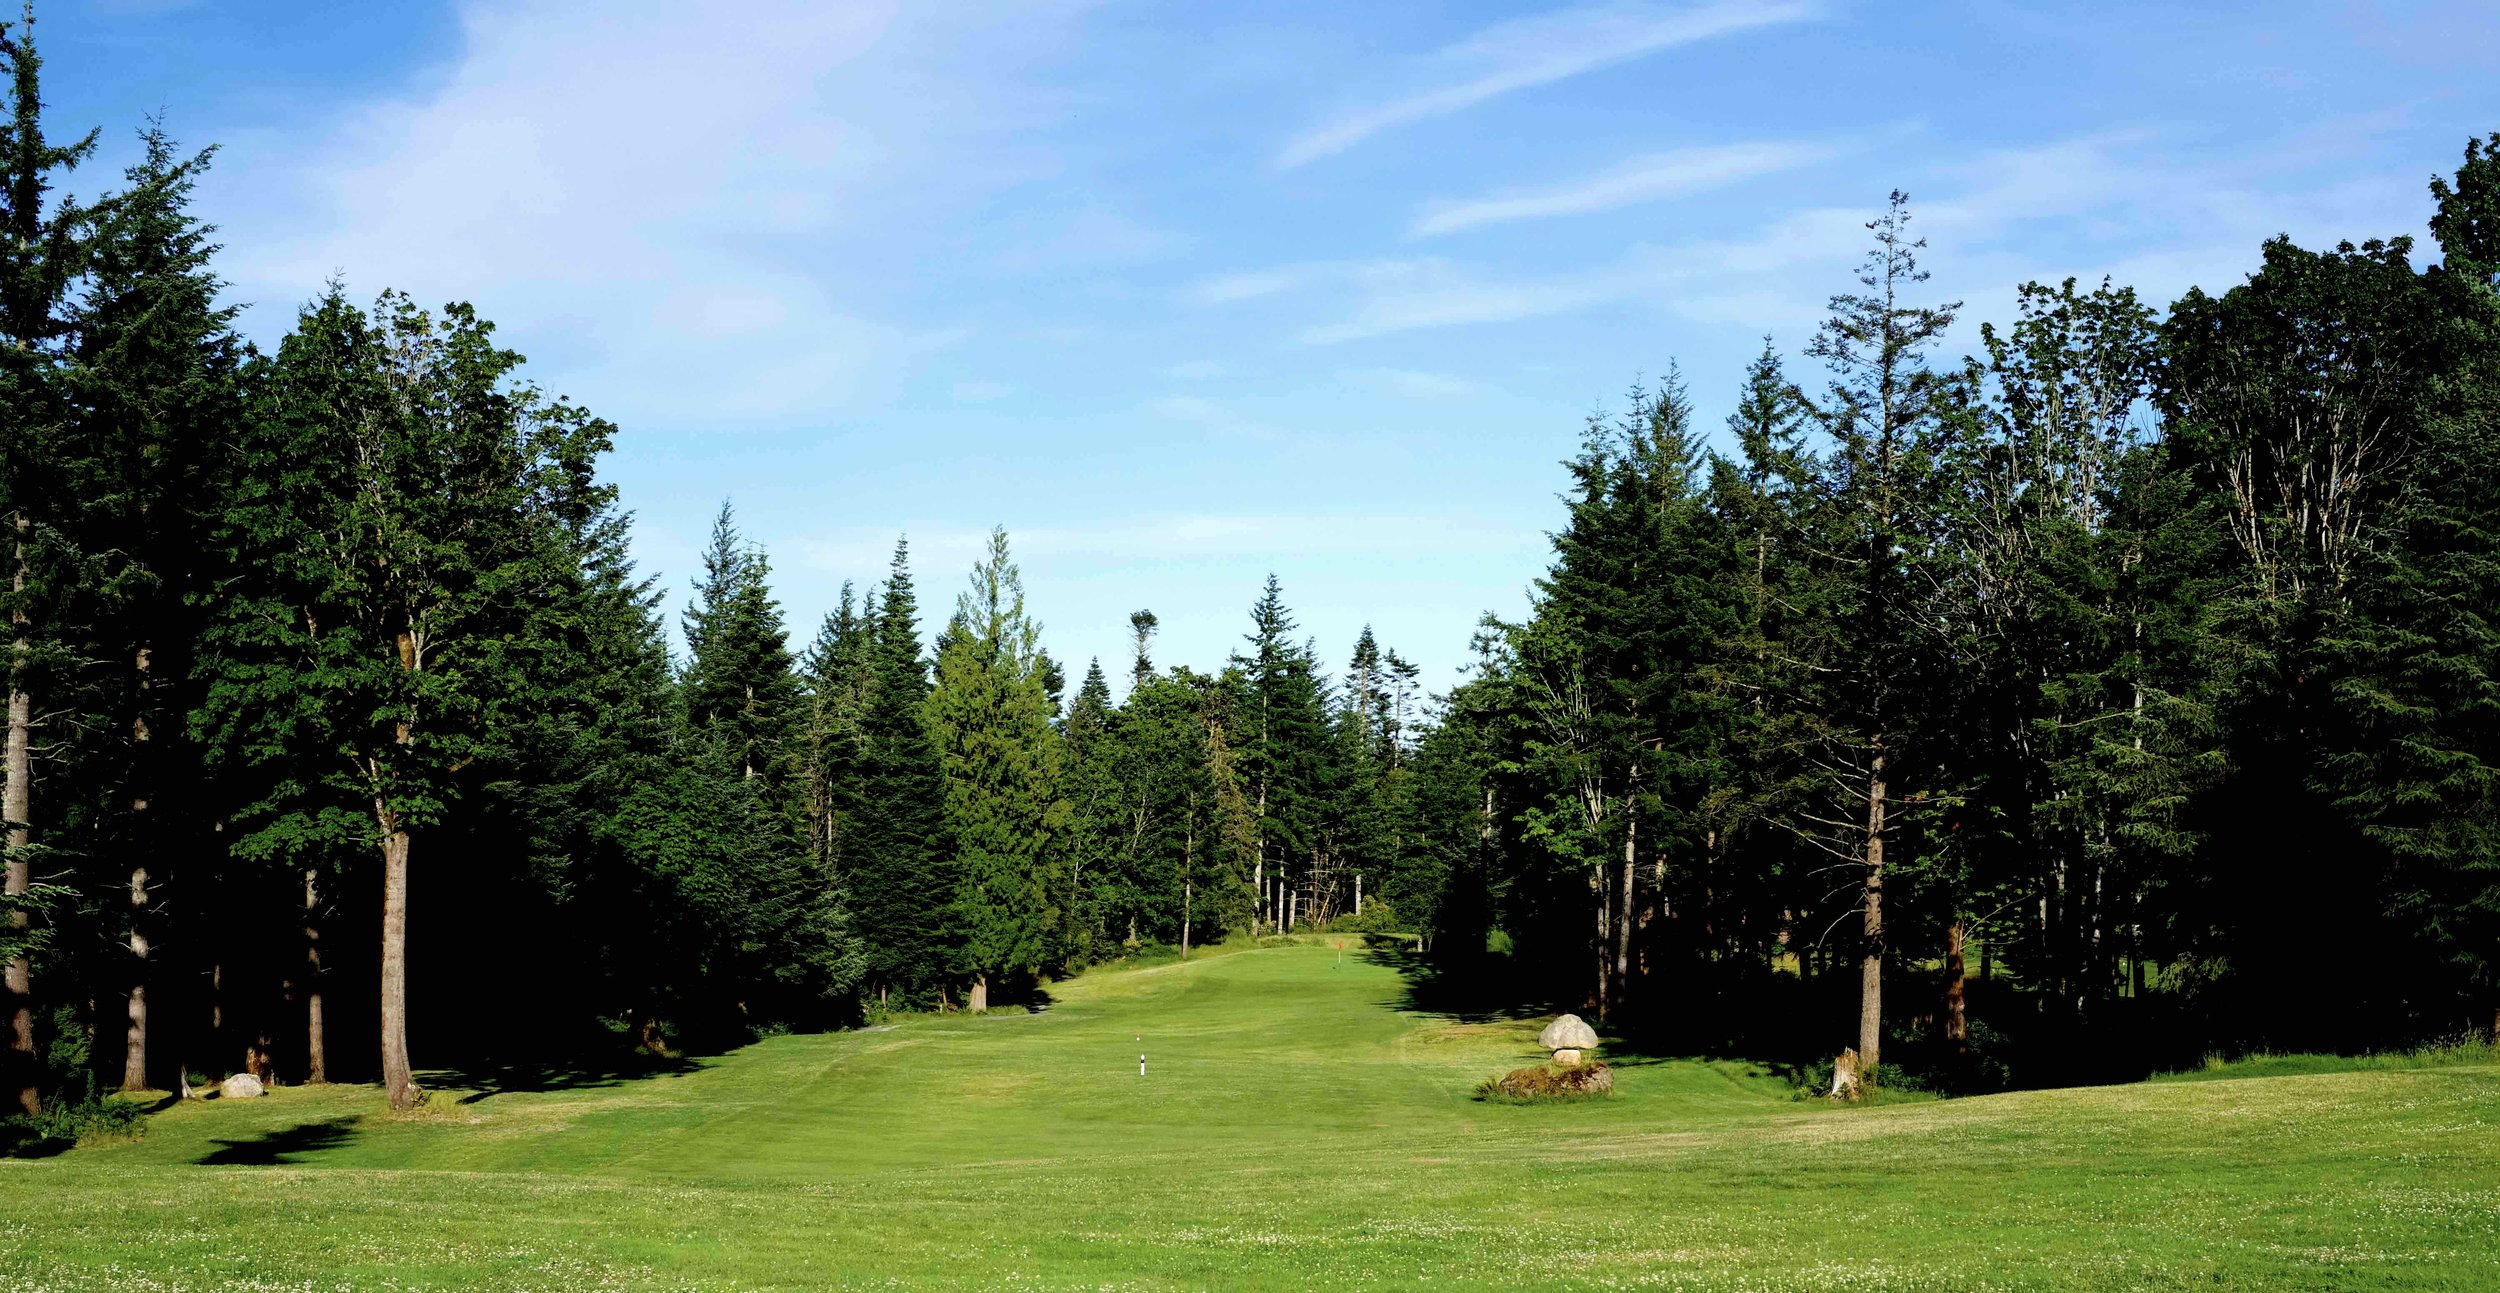 QuadraGolf_Hole1_fairway_DSC00309.jpg